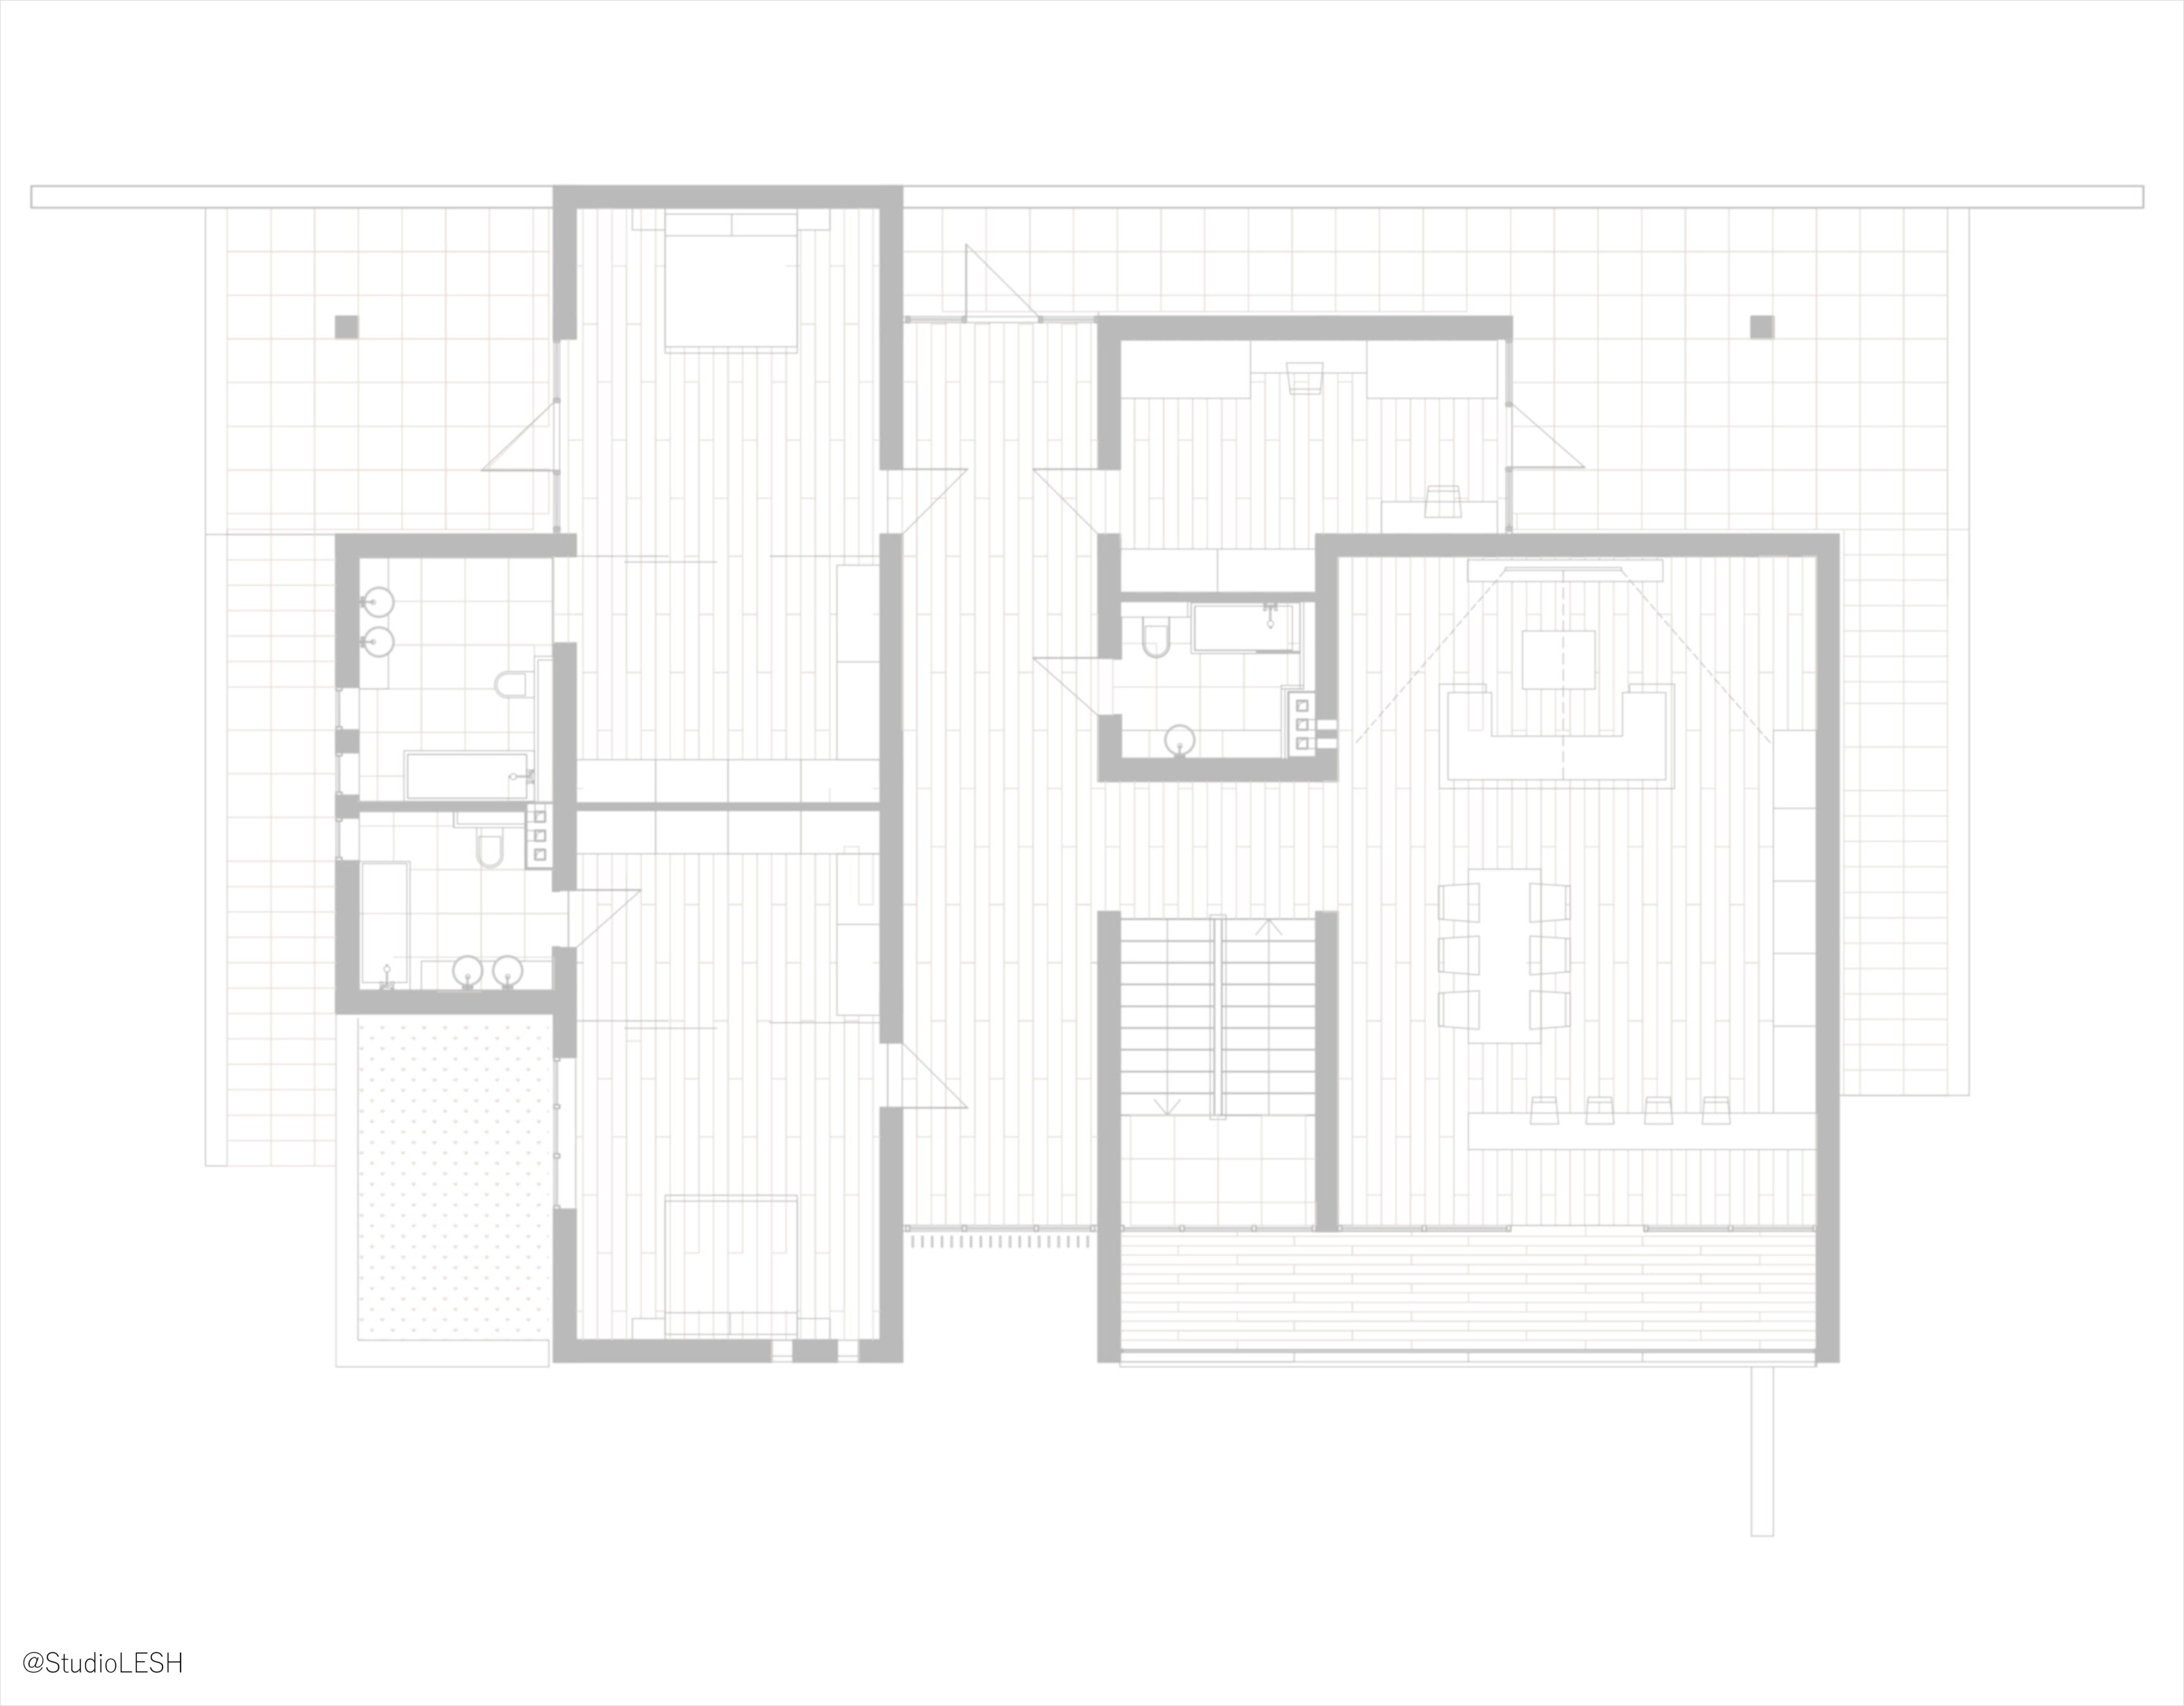 Design scheme of the house